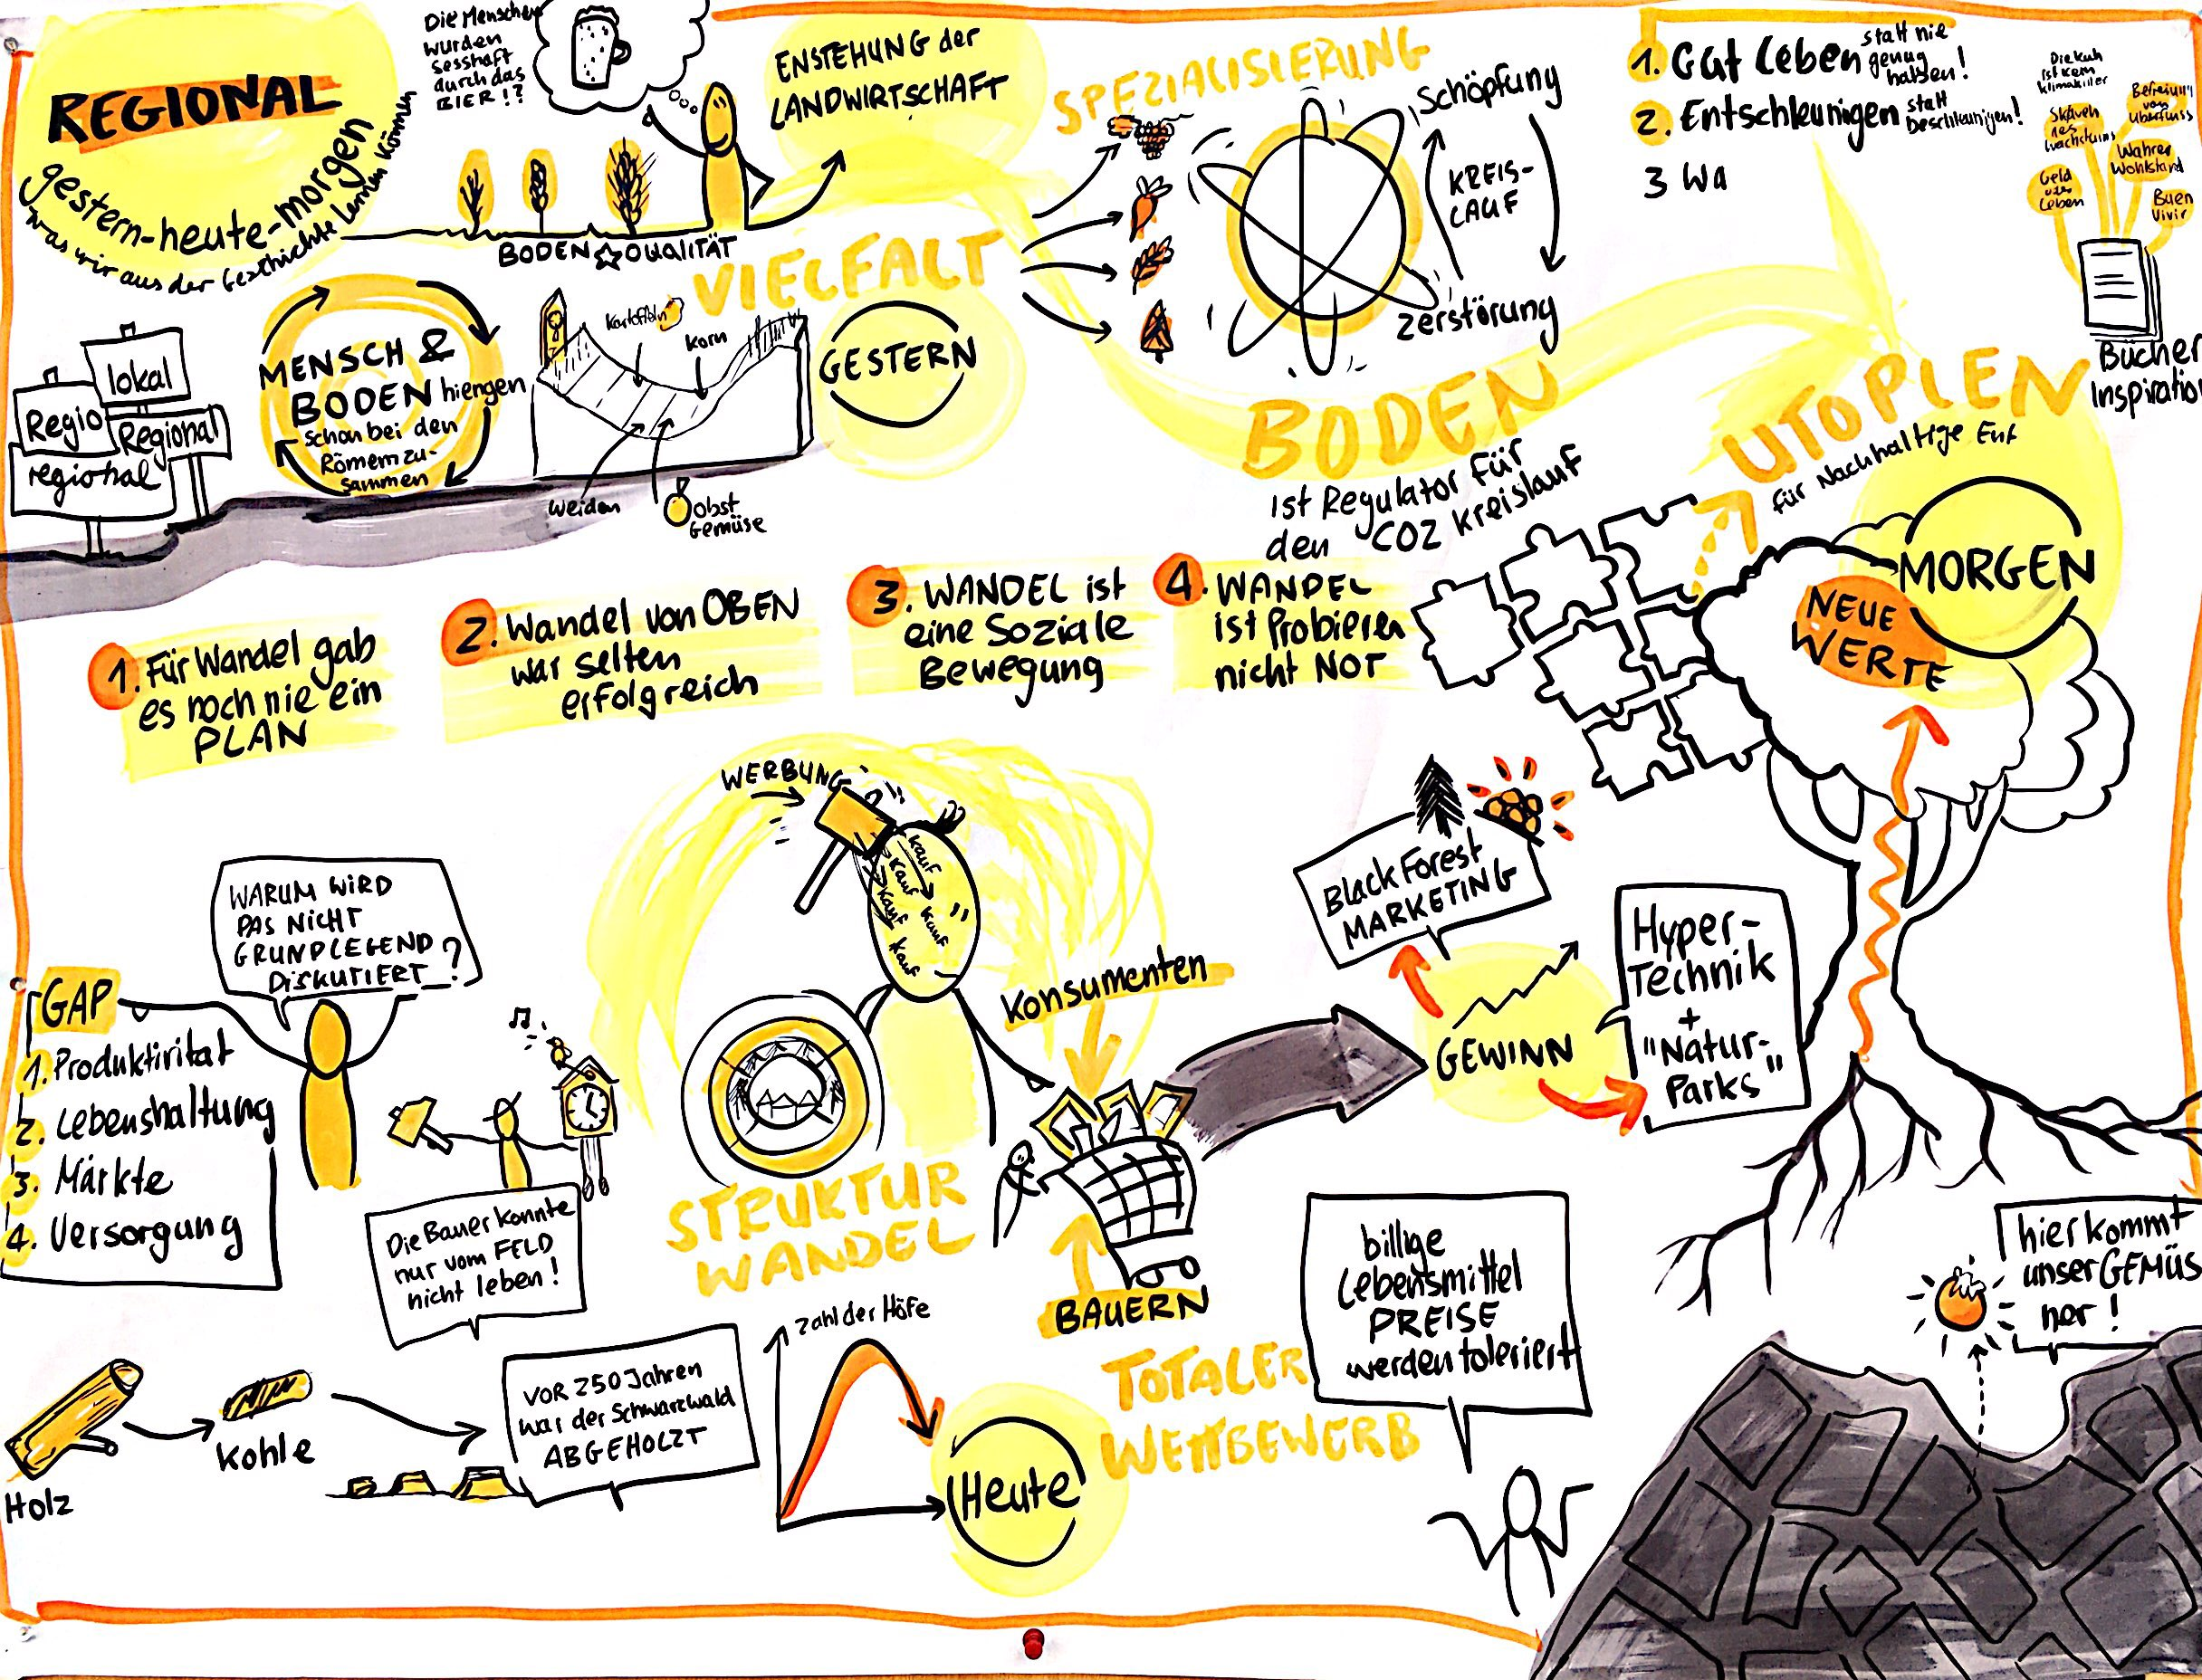 AgriKultur-Graphic-Recording_Regional_Siegfried_Jäckle